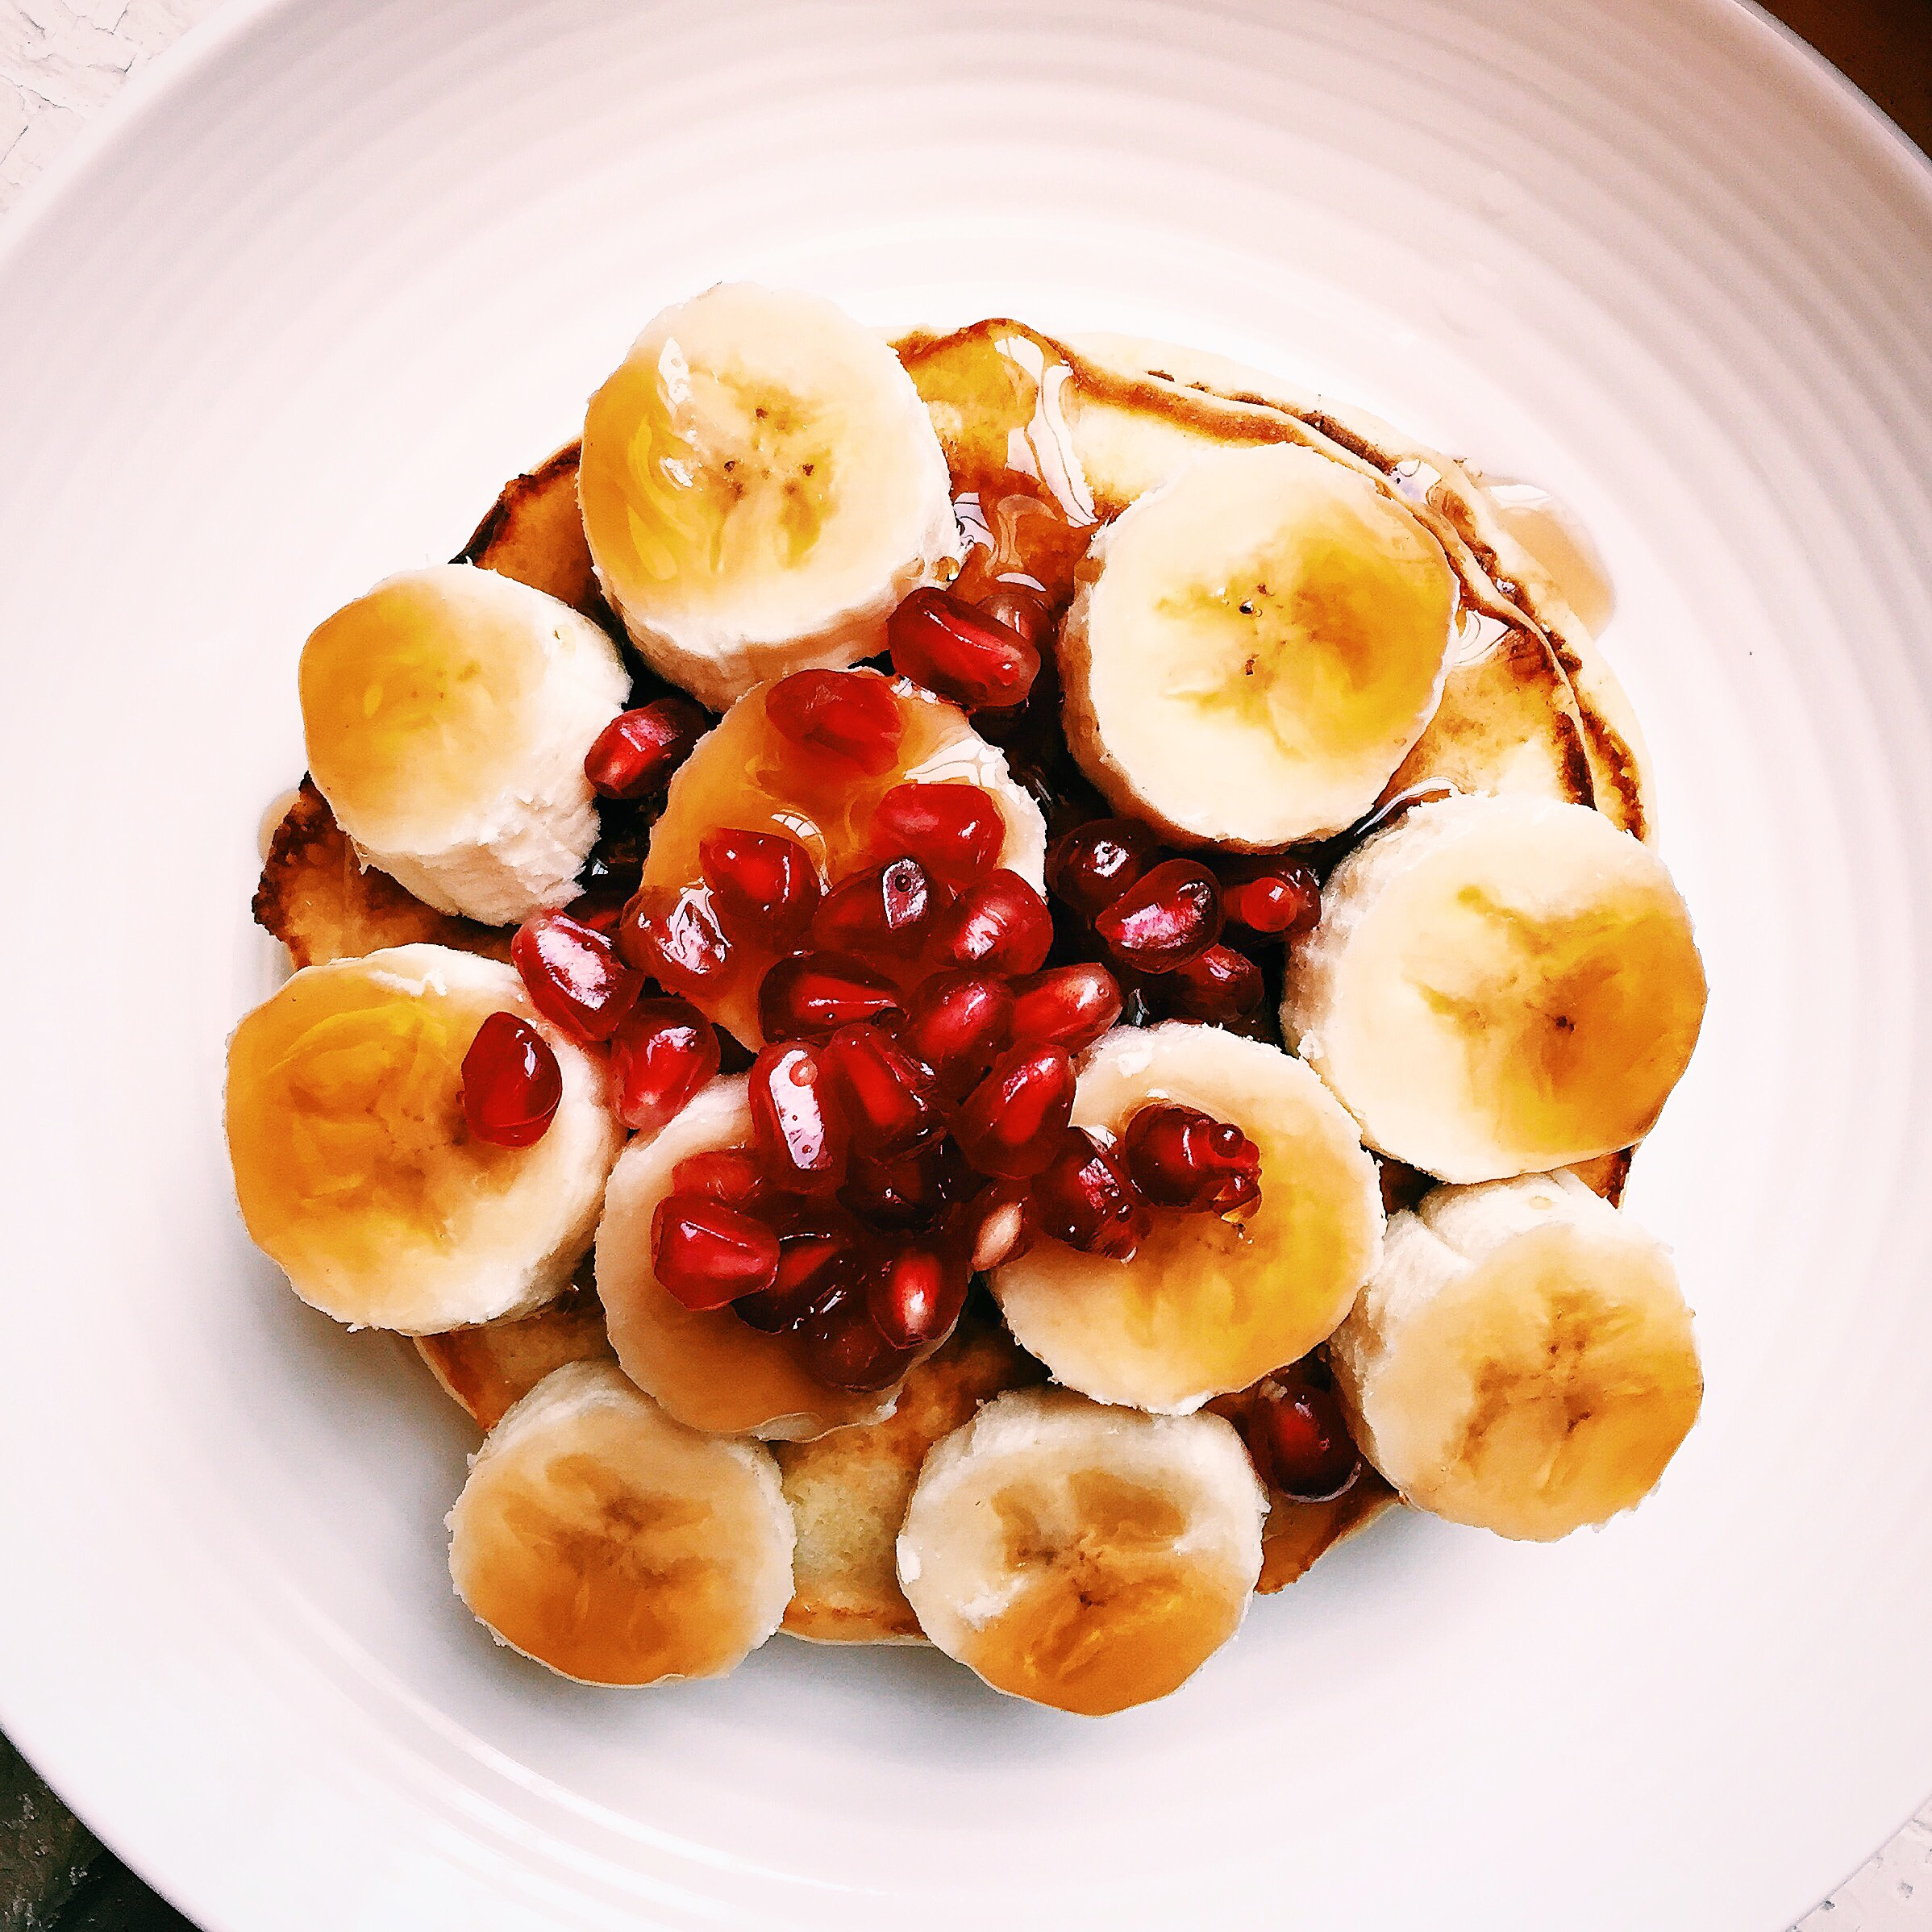 First Breakfast of the New Year: pancakes with bananas and pomegranate seeds